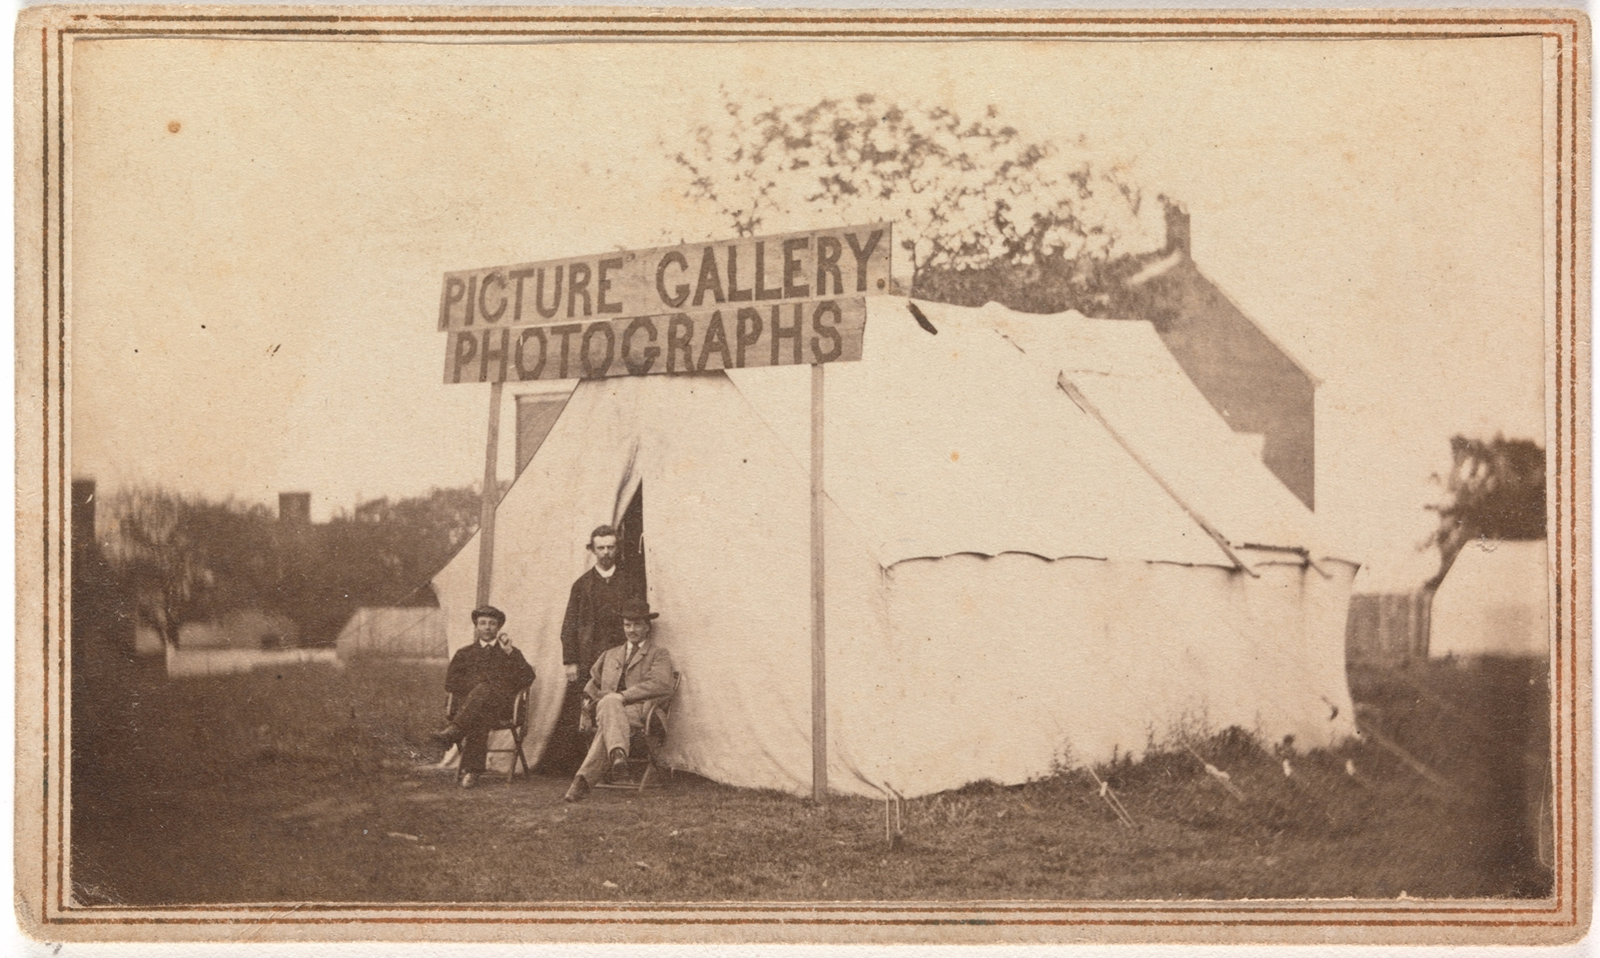 Picture gallery photographs, 1860s.